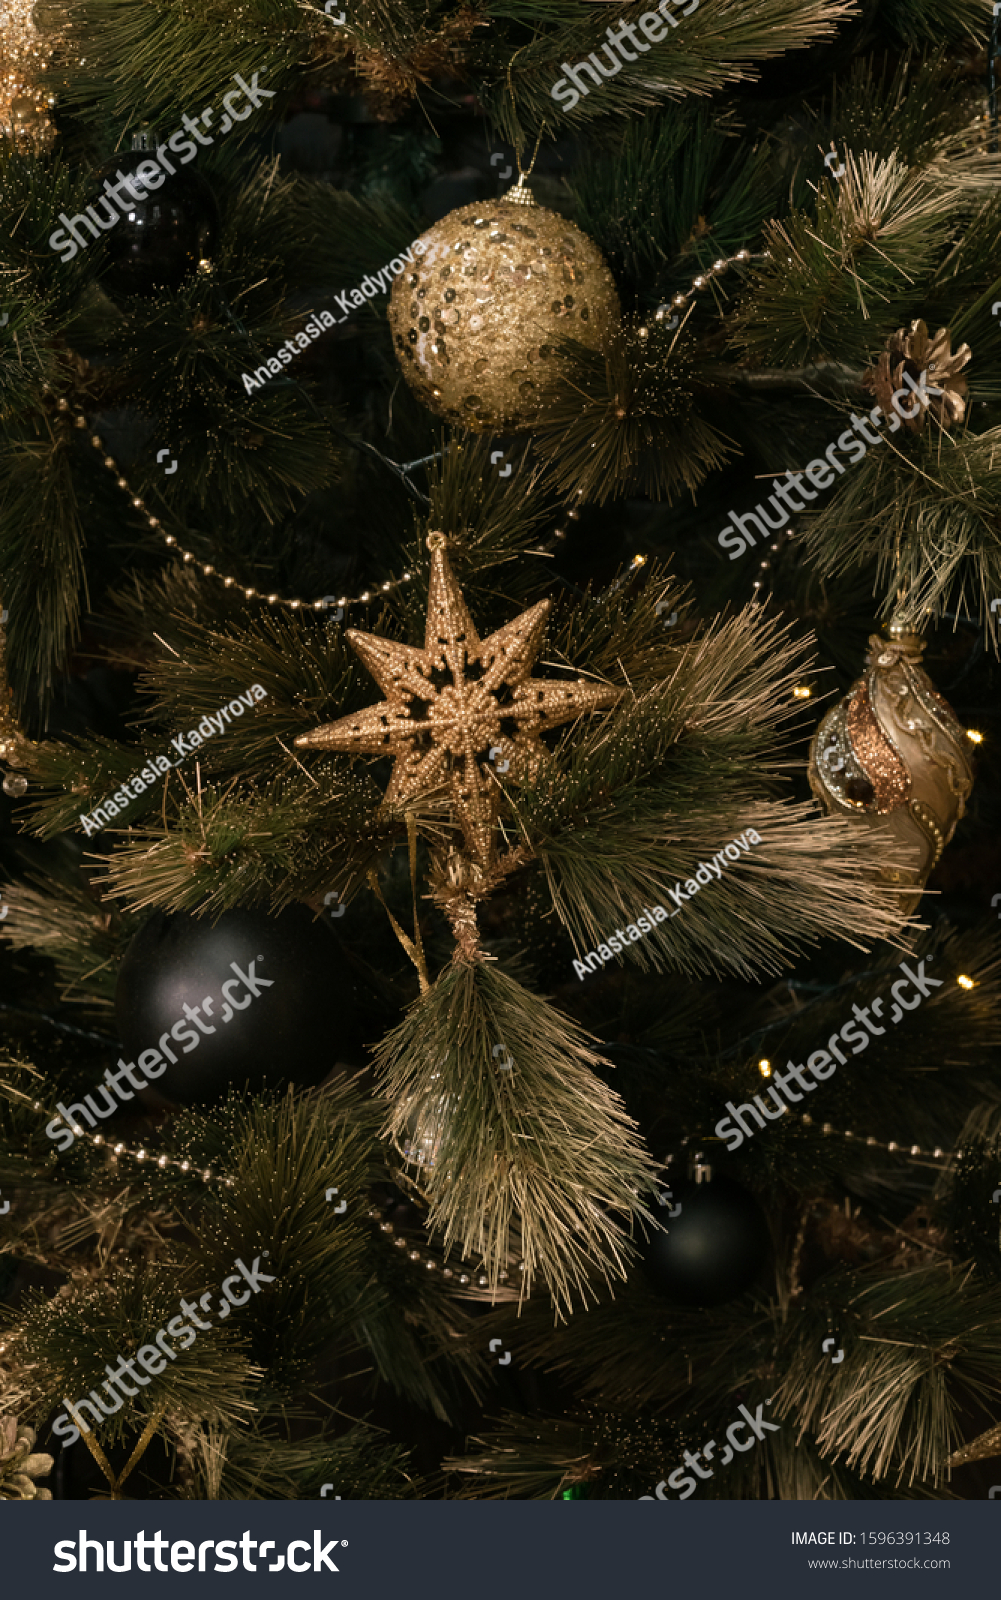 Gold Black Christmas Decorations On Christmas Stock Photo Edit Now 1596391348